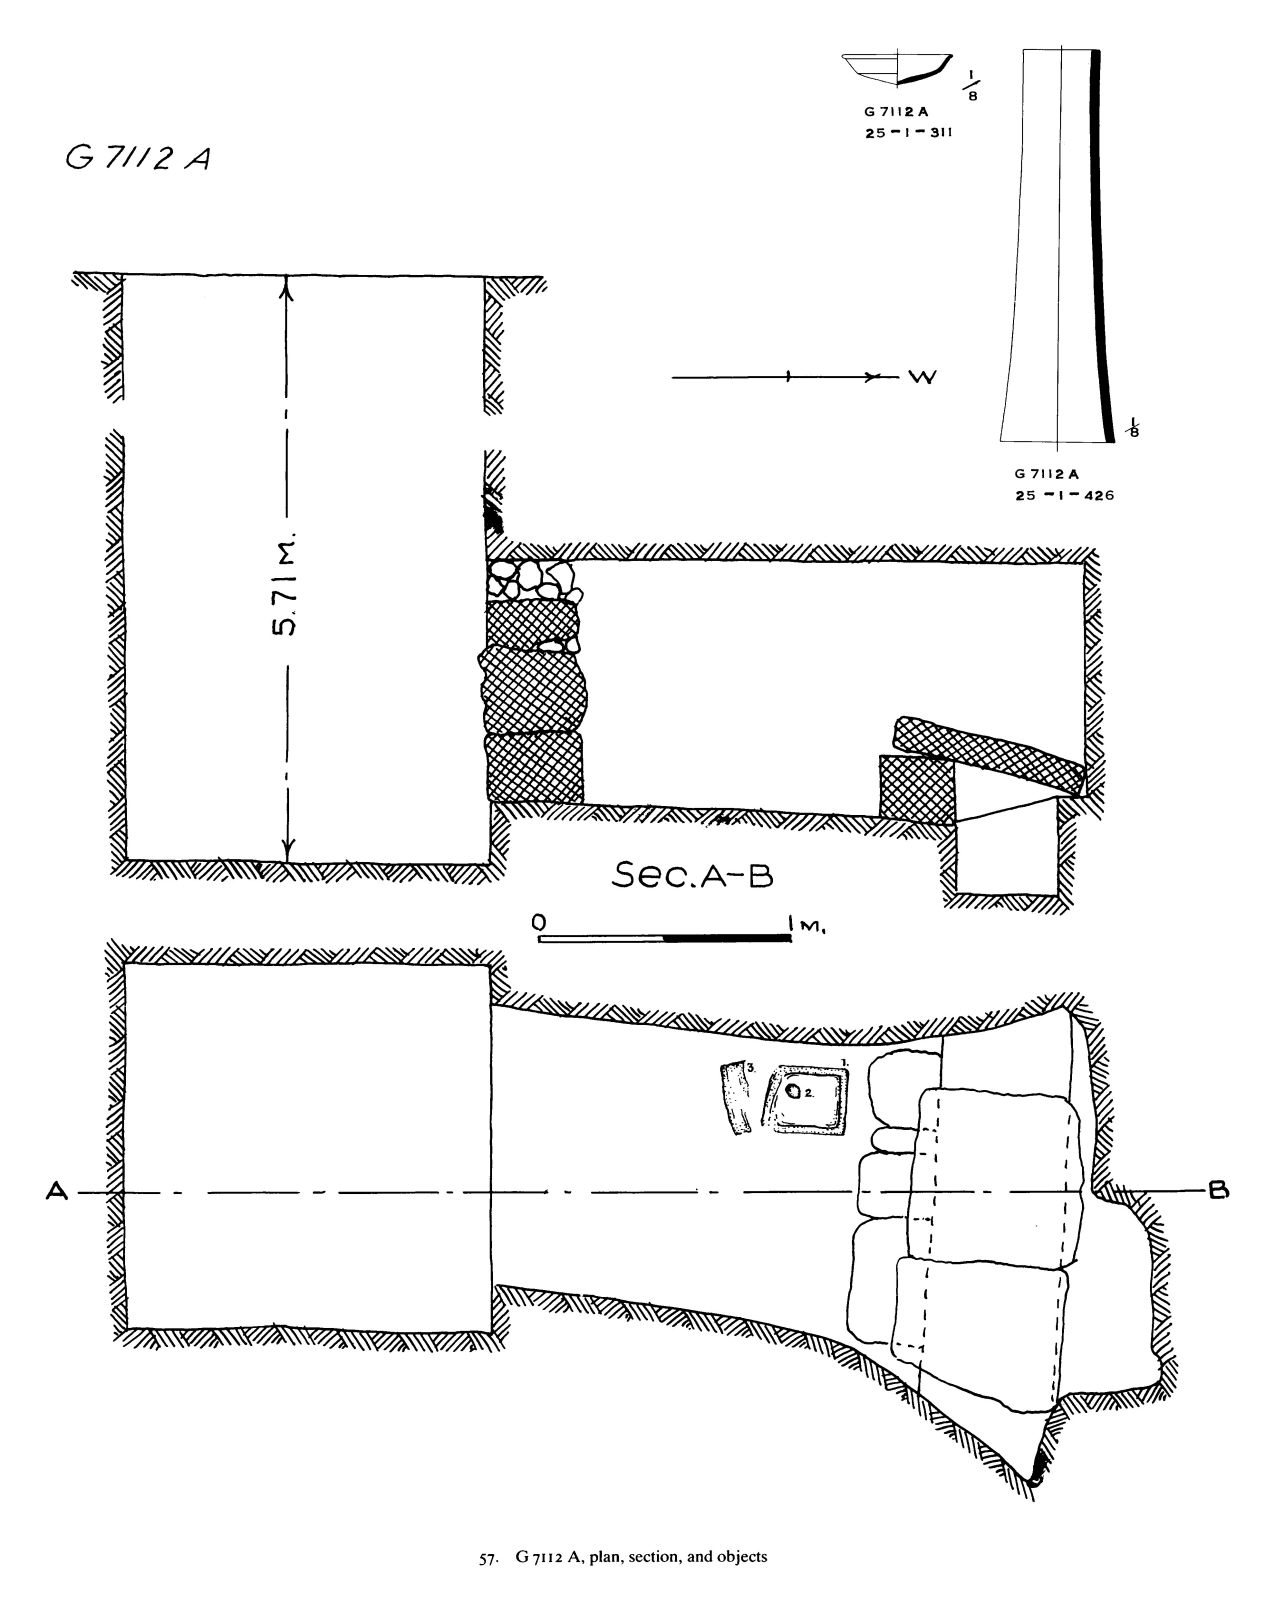 Maps and plans: G 7112, Shaft A; and G 7112, Shaft A: pottery